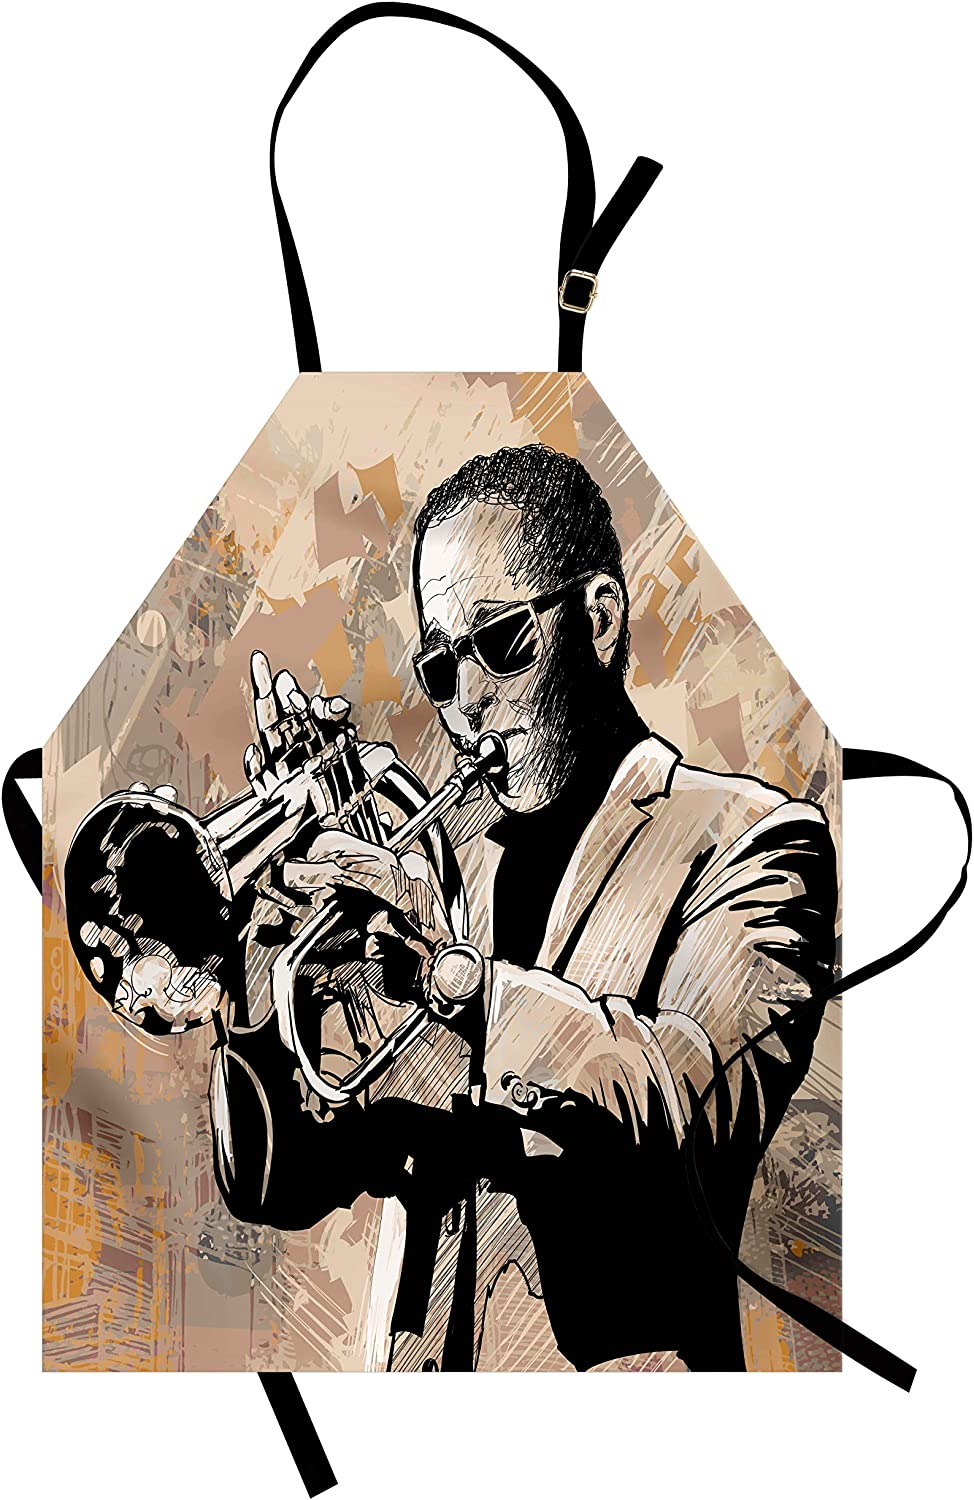 Ambesonne Jazz Music Apron, Grunge Style Illustration of Musician with Sunglasses Playing Trumpet, Unisex Kitchen Bib with Adjustable Neck for Cooking Gardening, Adult Size, Beige Black